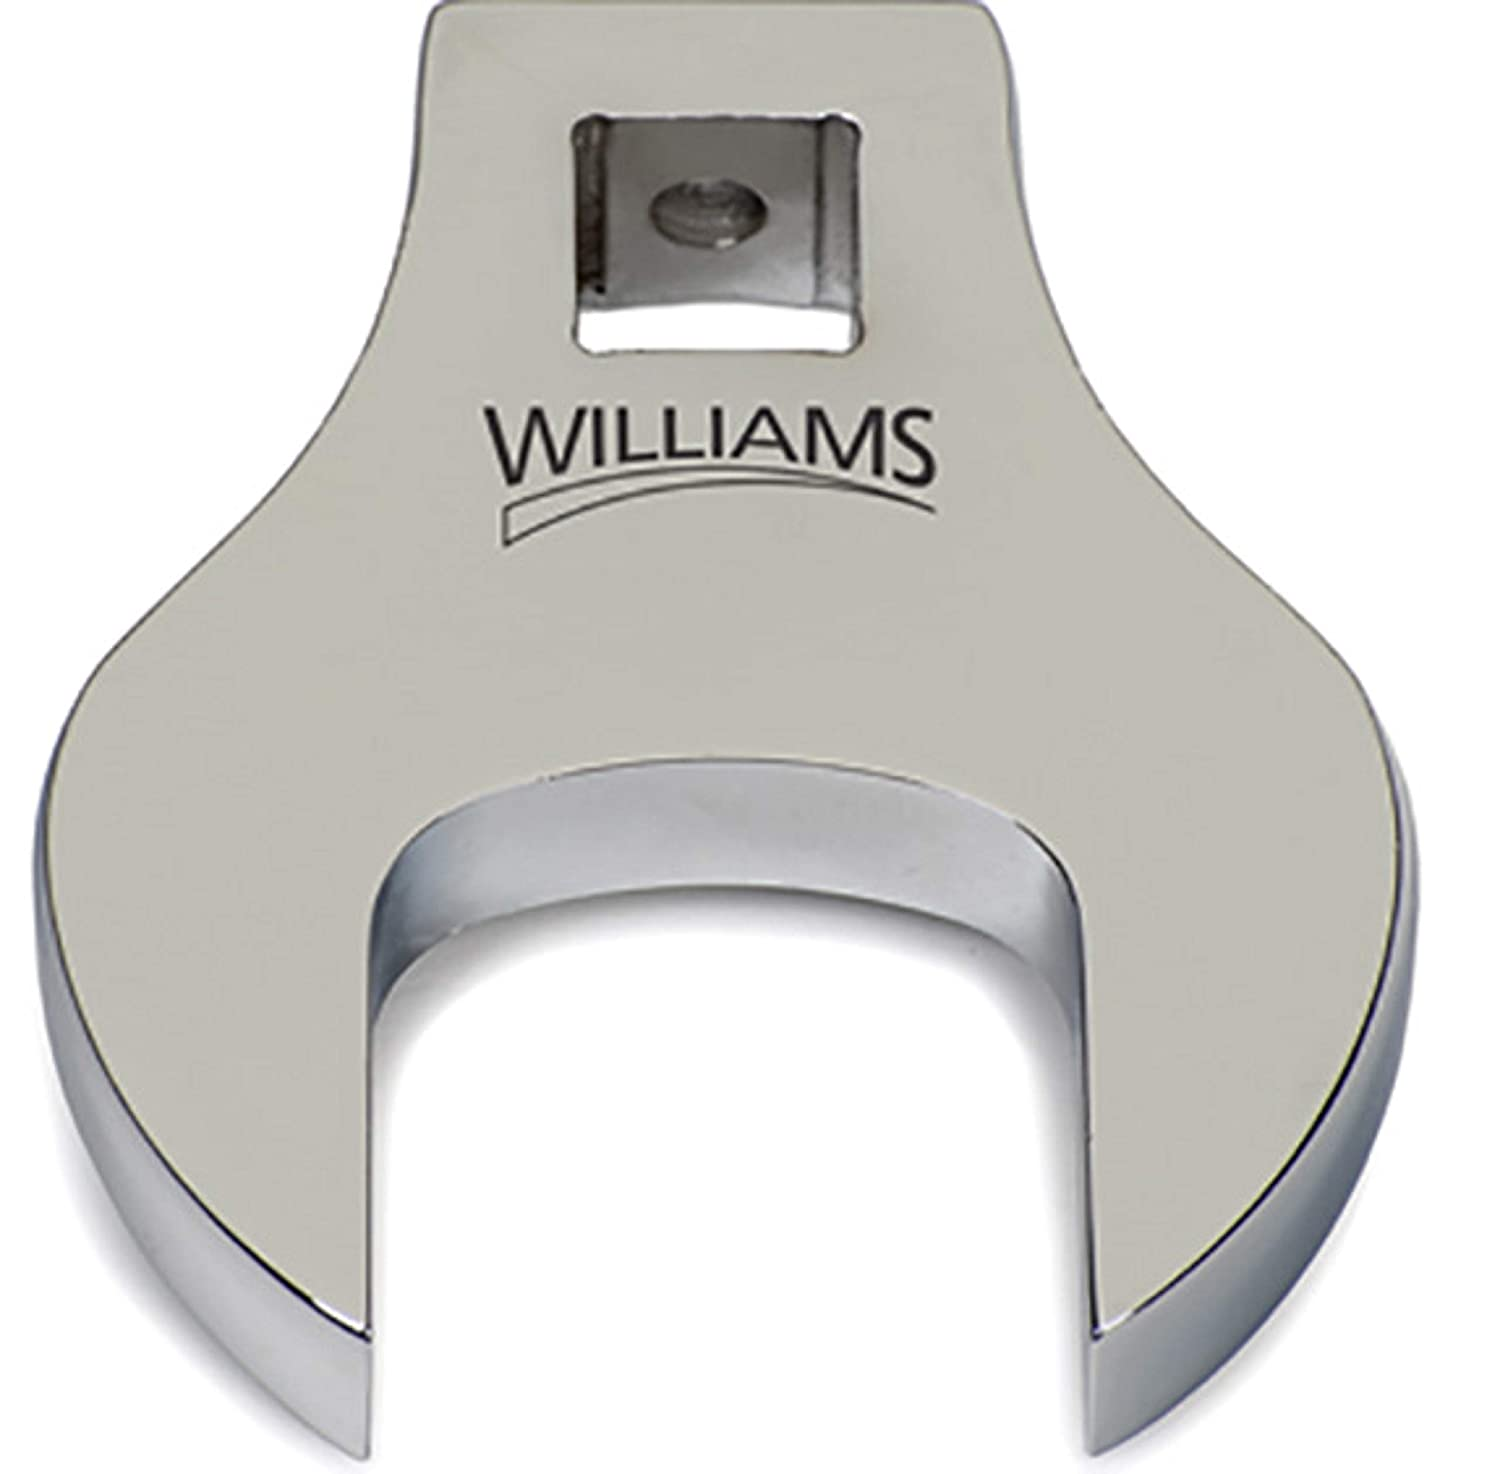 Williams 10831 1//2-Inch Open End Drive Crowfoot Wrench 2-1//4-Inch